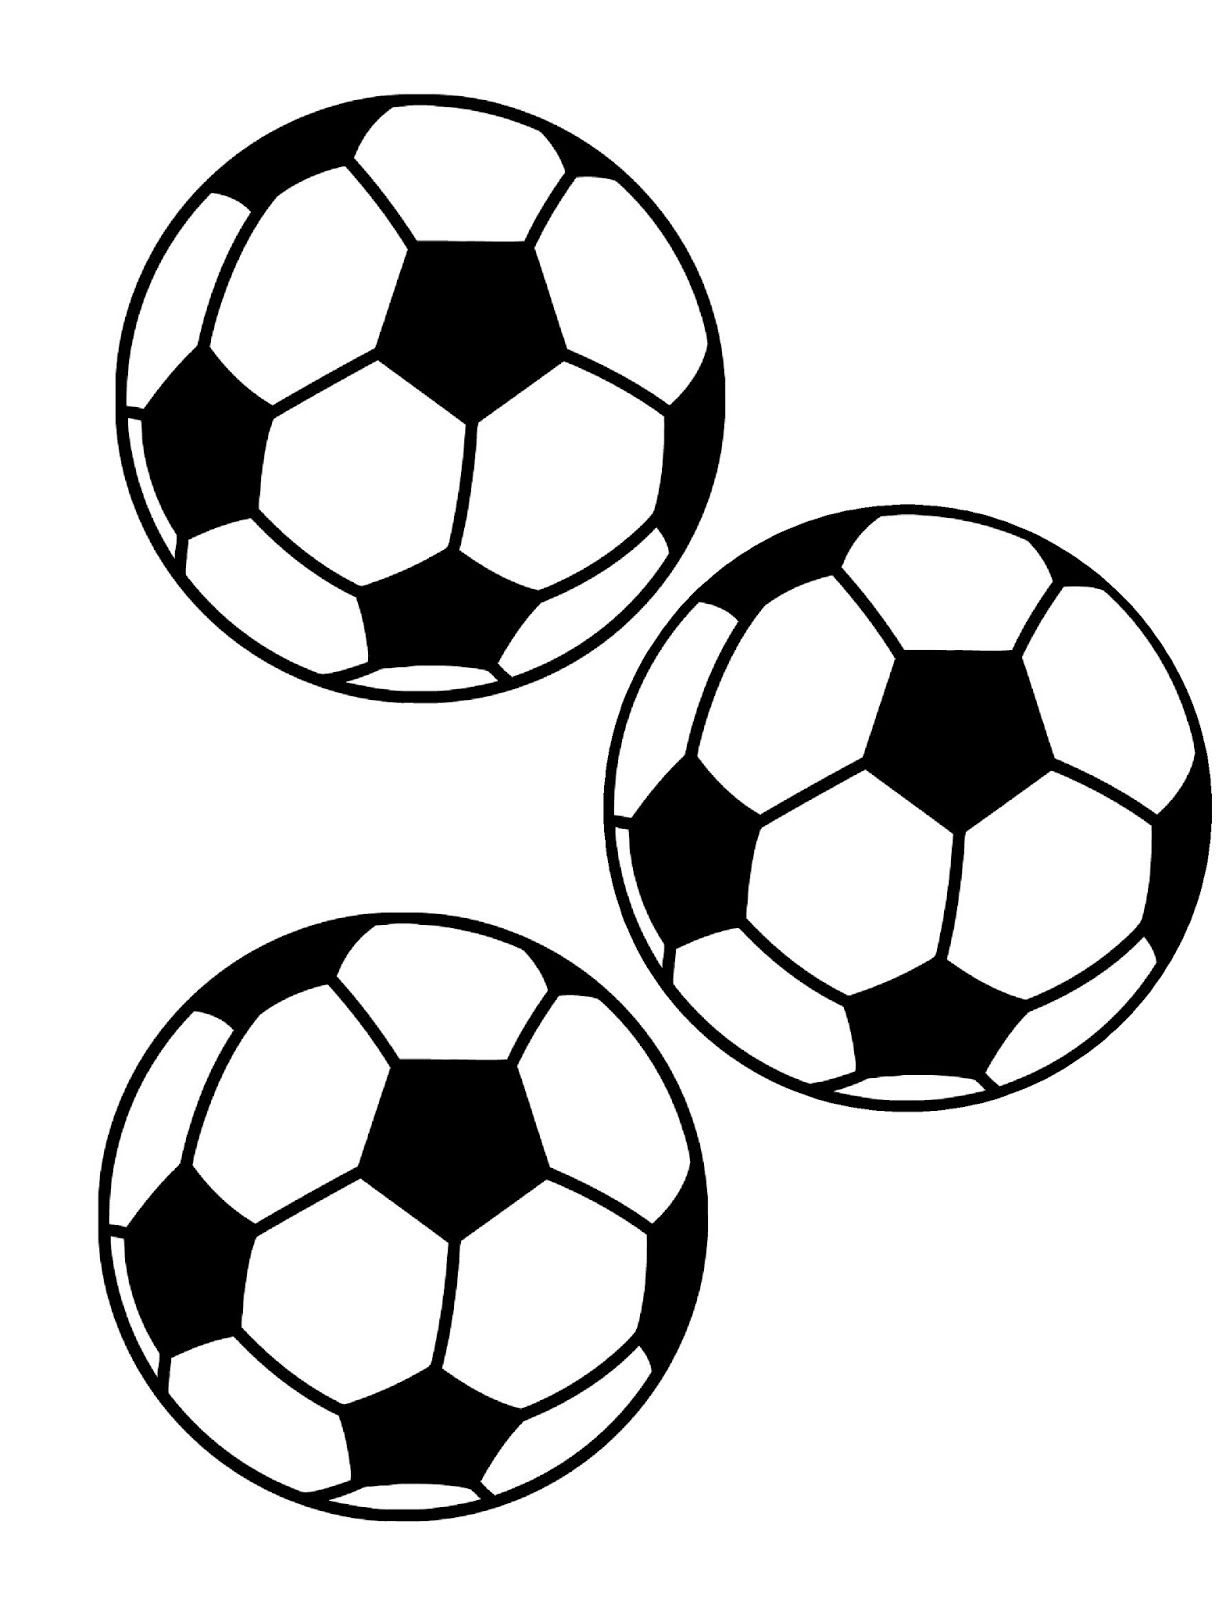 1219x1600 Marvelous Soccer Ball Coloring Page Printable Image For Popular